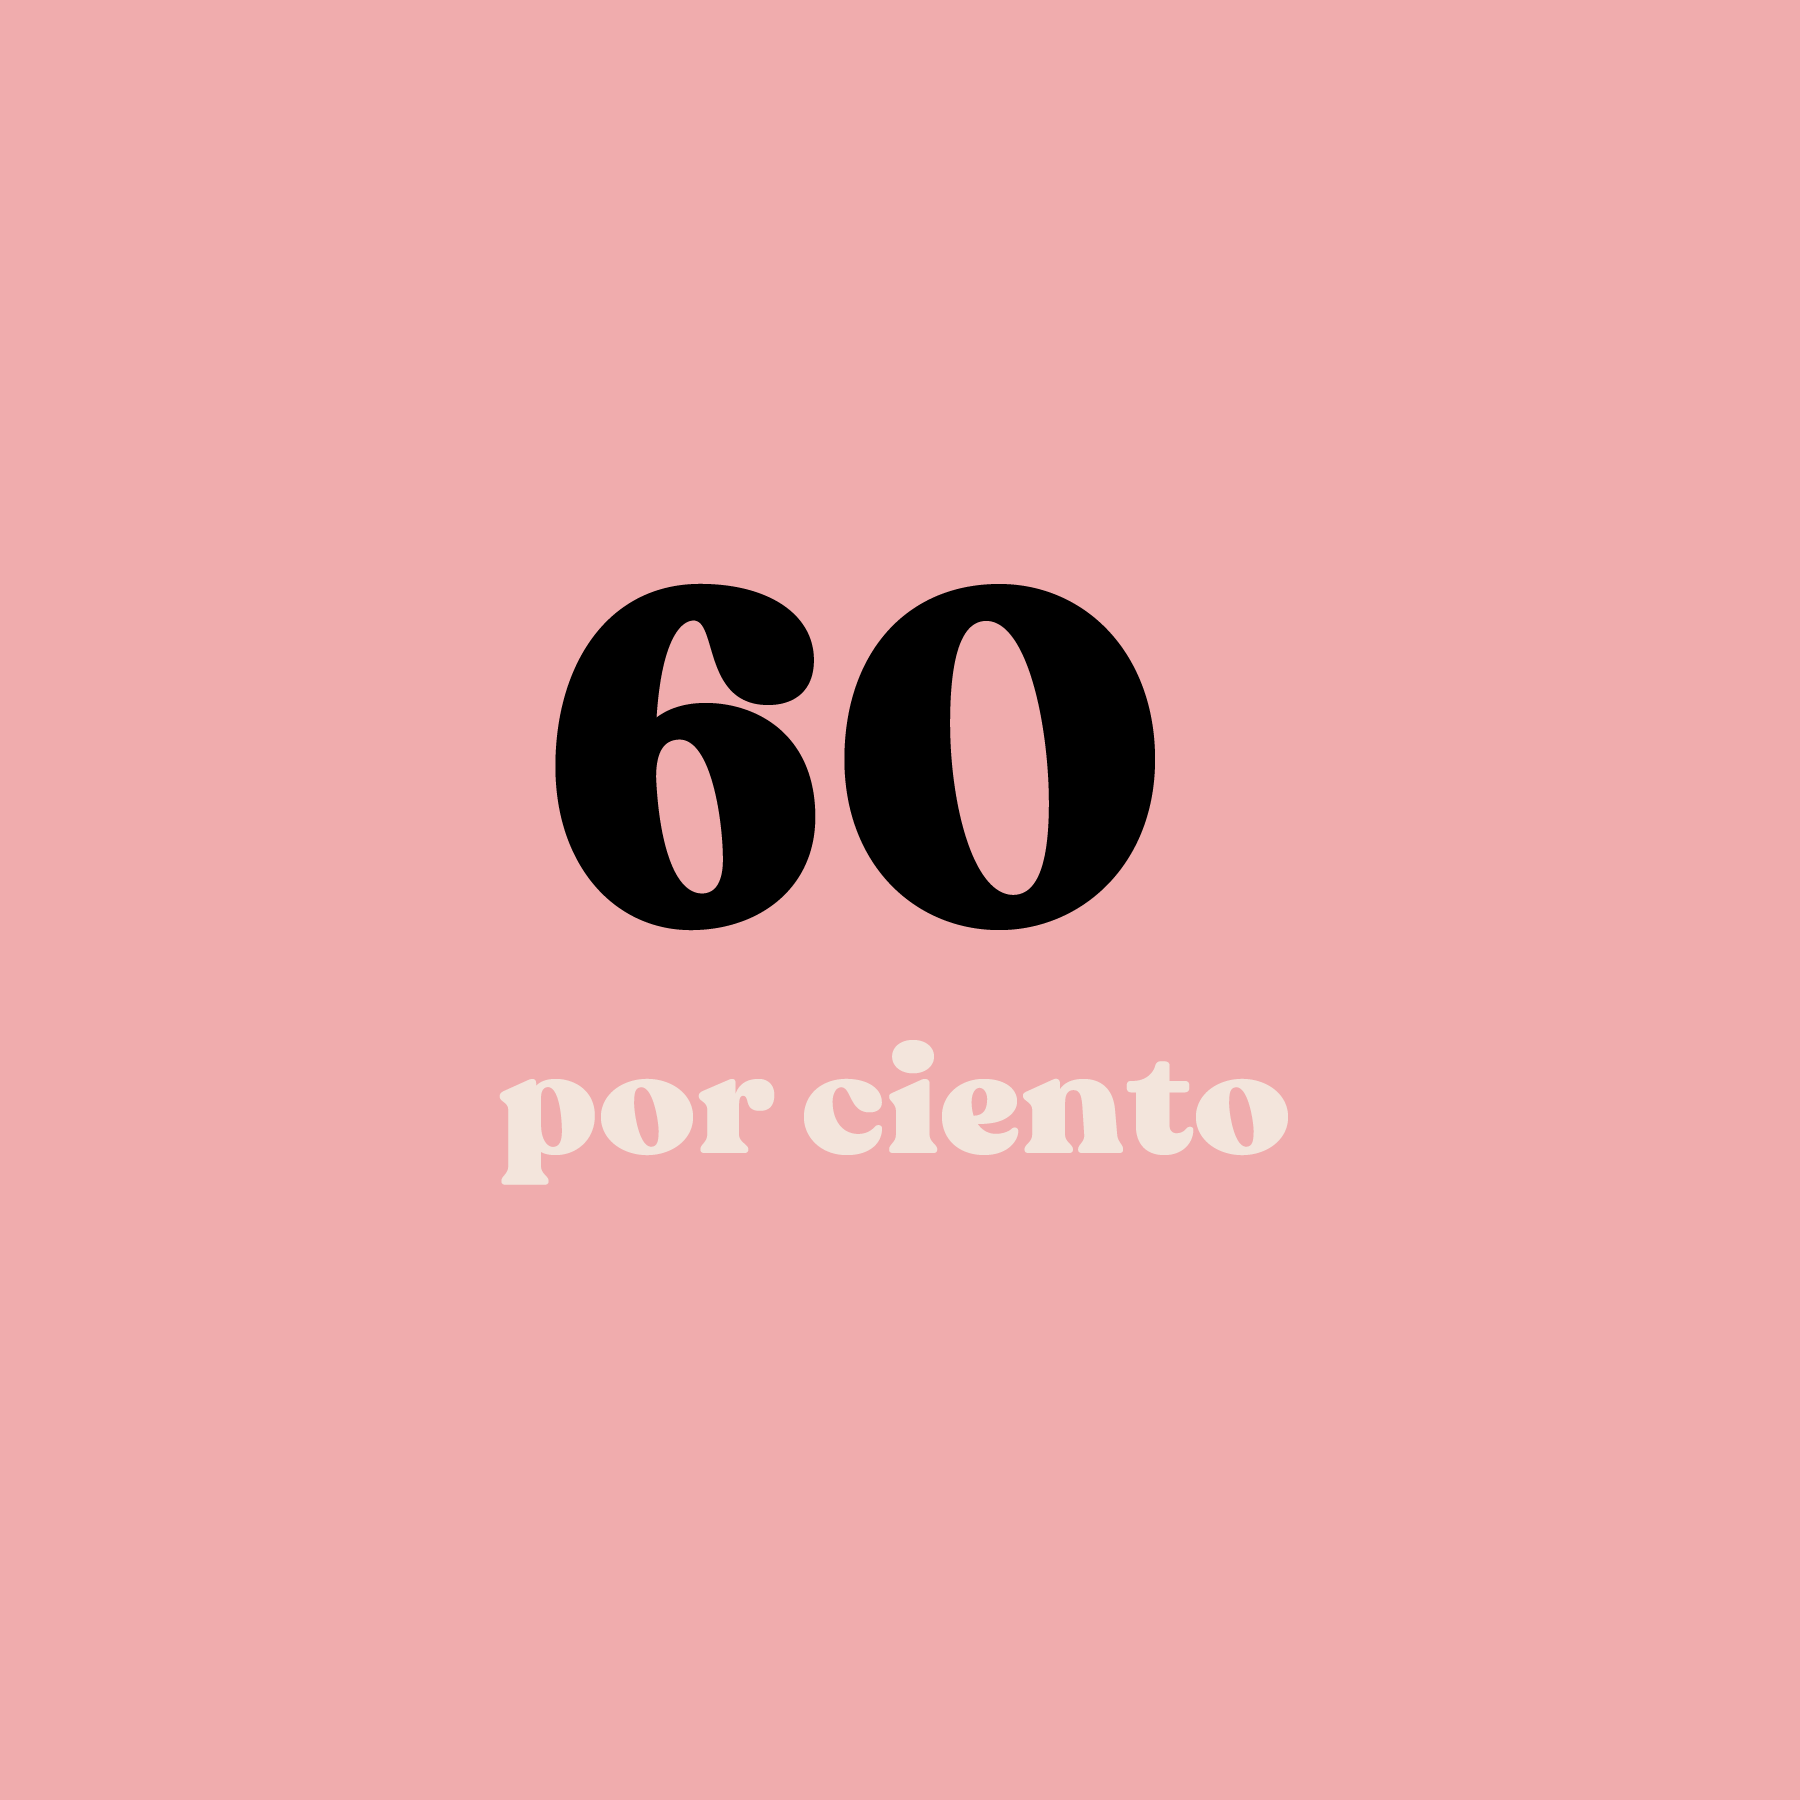 60.png